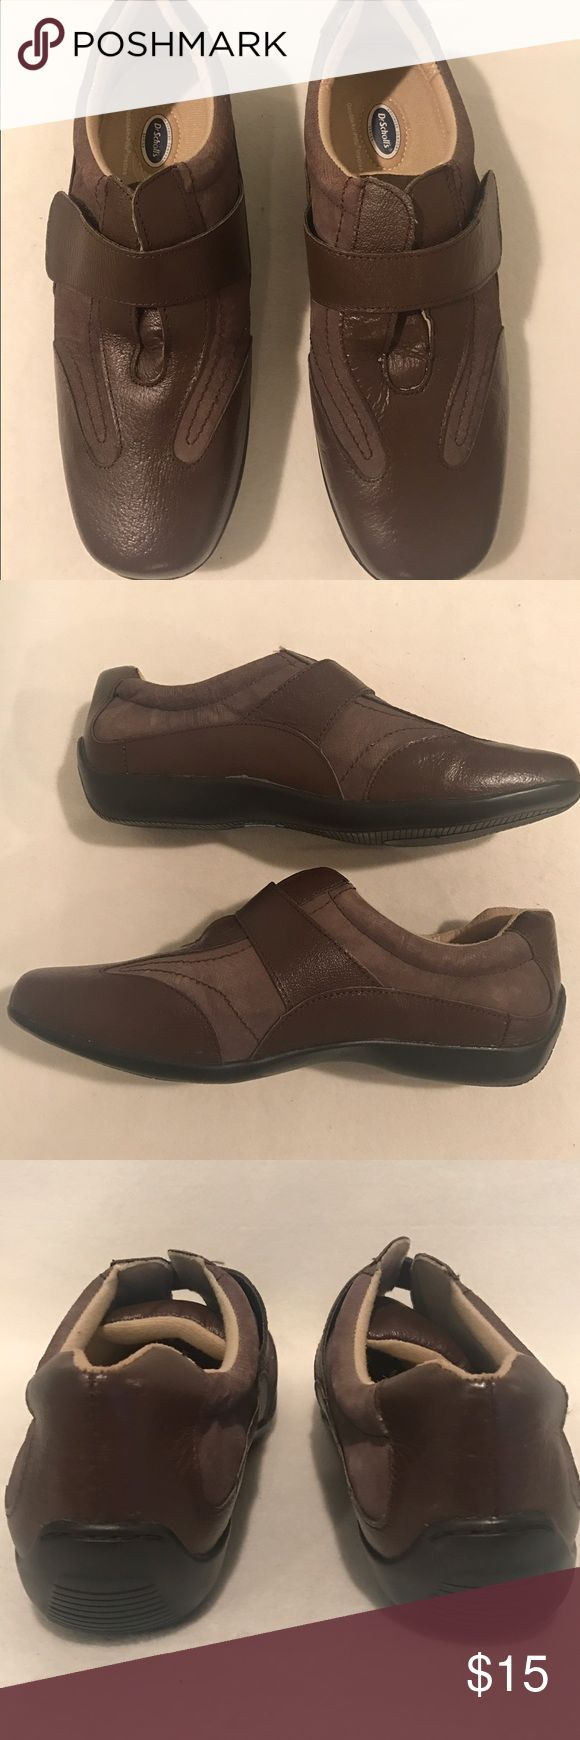 NWOT DR. SCHOLL'S Women's Shoes Sneakers Velcro Dr. SCHOLL'S Women's brown athletic or casual shoes. Velcro enclosure. Wide fit  Condition: Brand new never worn. No box or tag  Series: Advanced Comfort Series. Double-air Pillo Insoles Material: Leather upper Size: 9W  Color: Brown Dr. Scholl's Shoes Sneakers